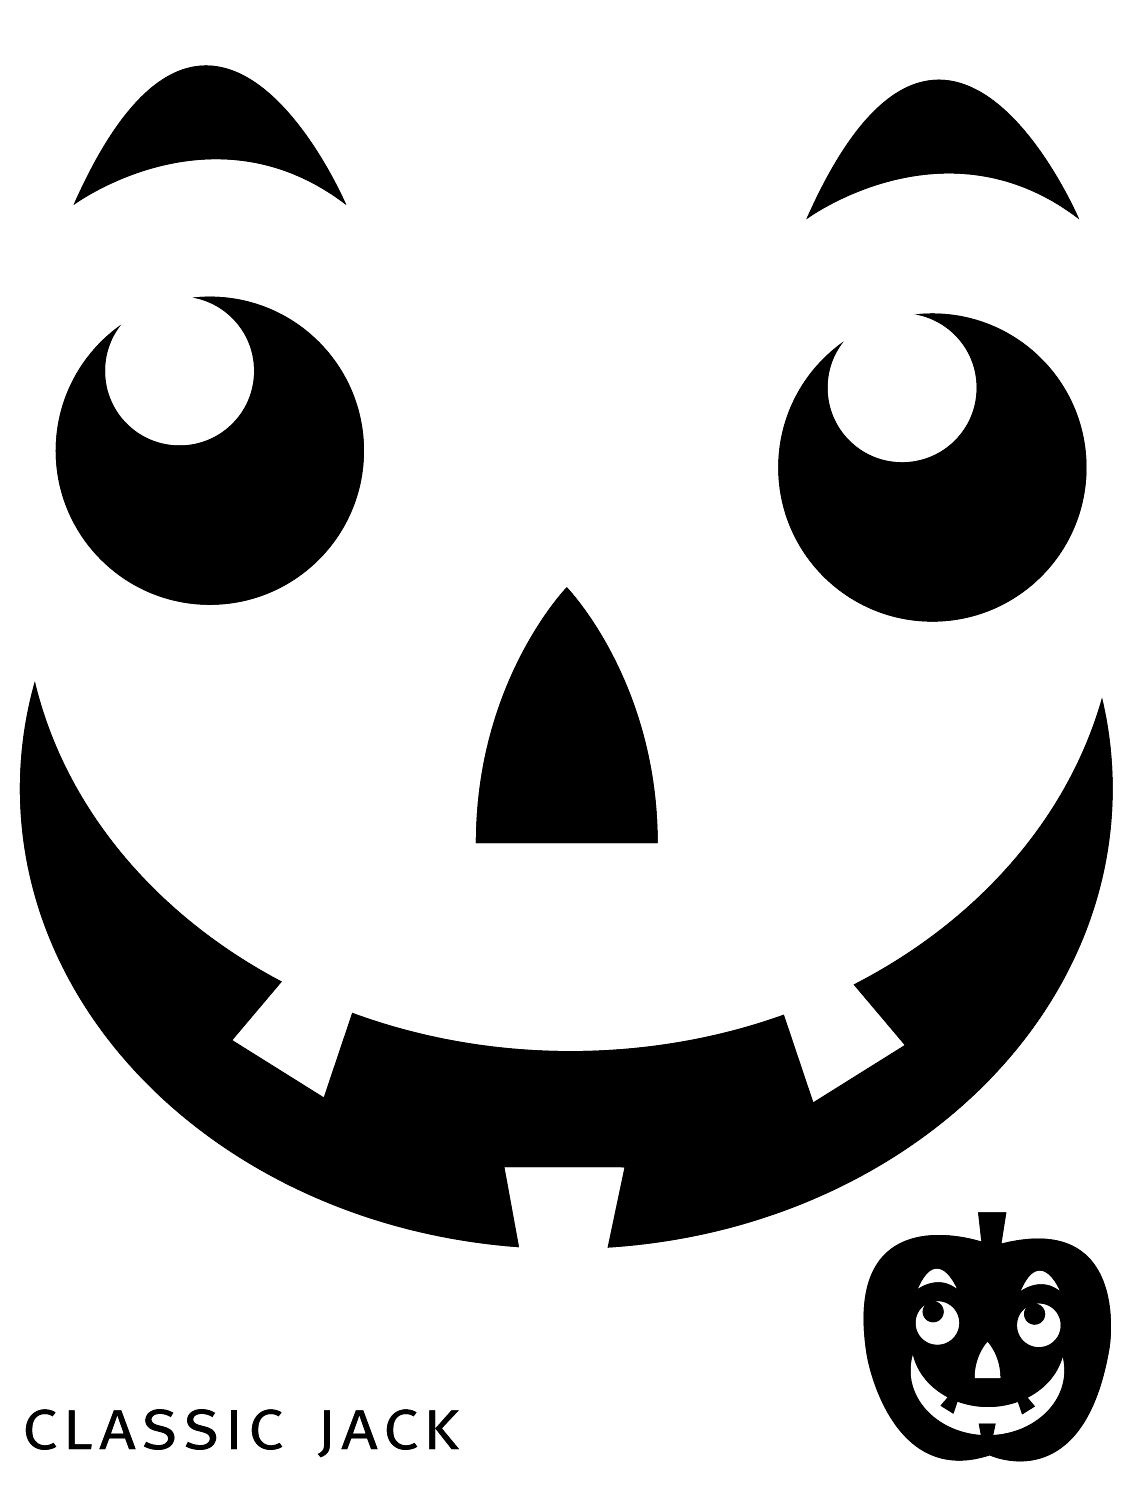 Free Printable Easy Funny Jack O Lantern Face Stencils Patterns - Jack O Lantern Templates Printable Free